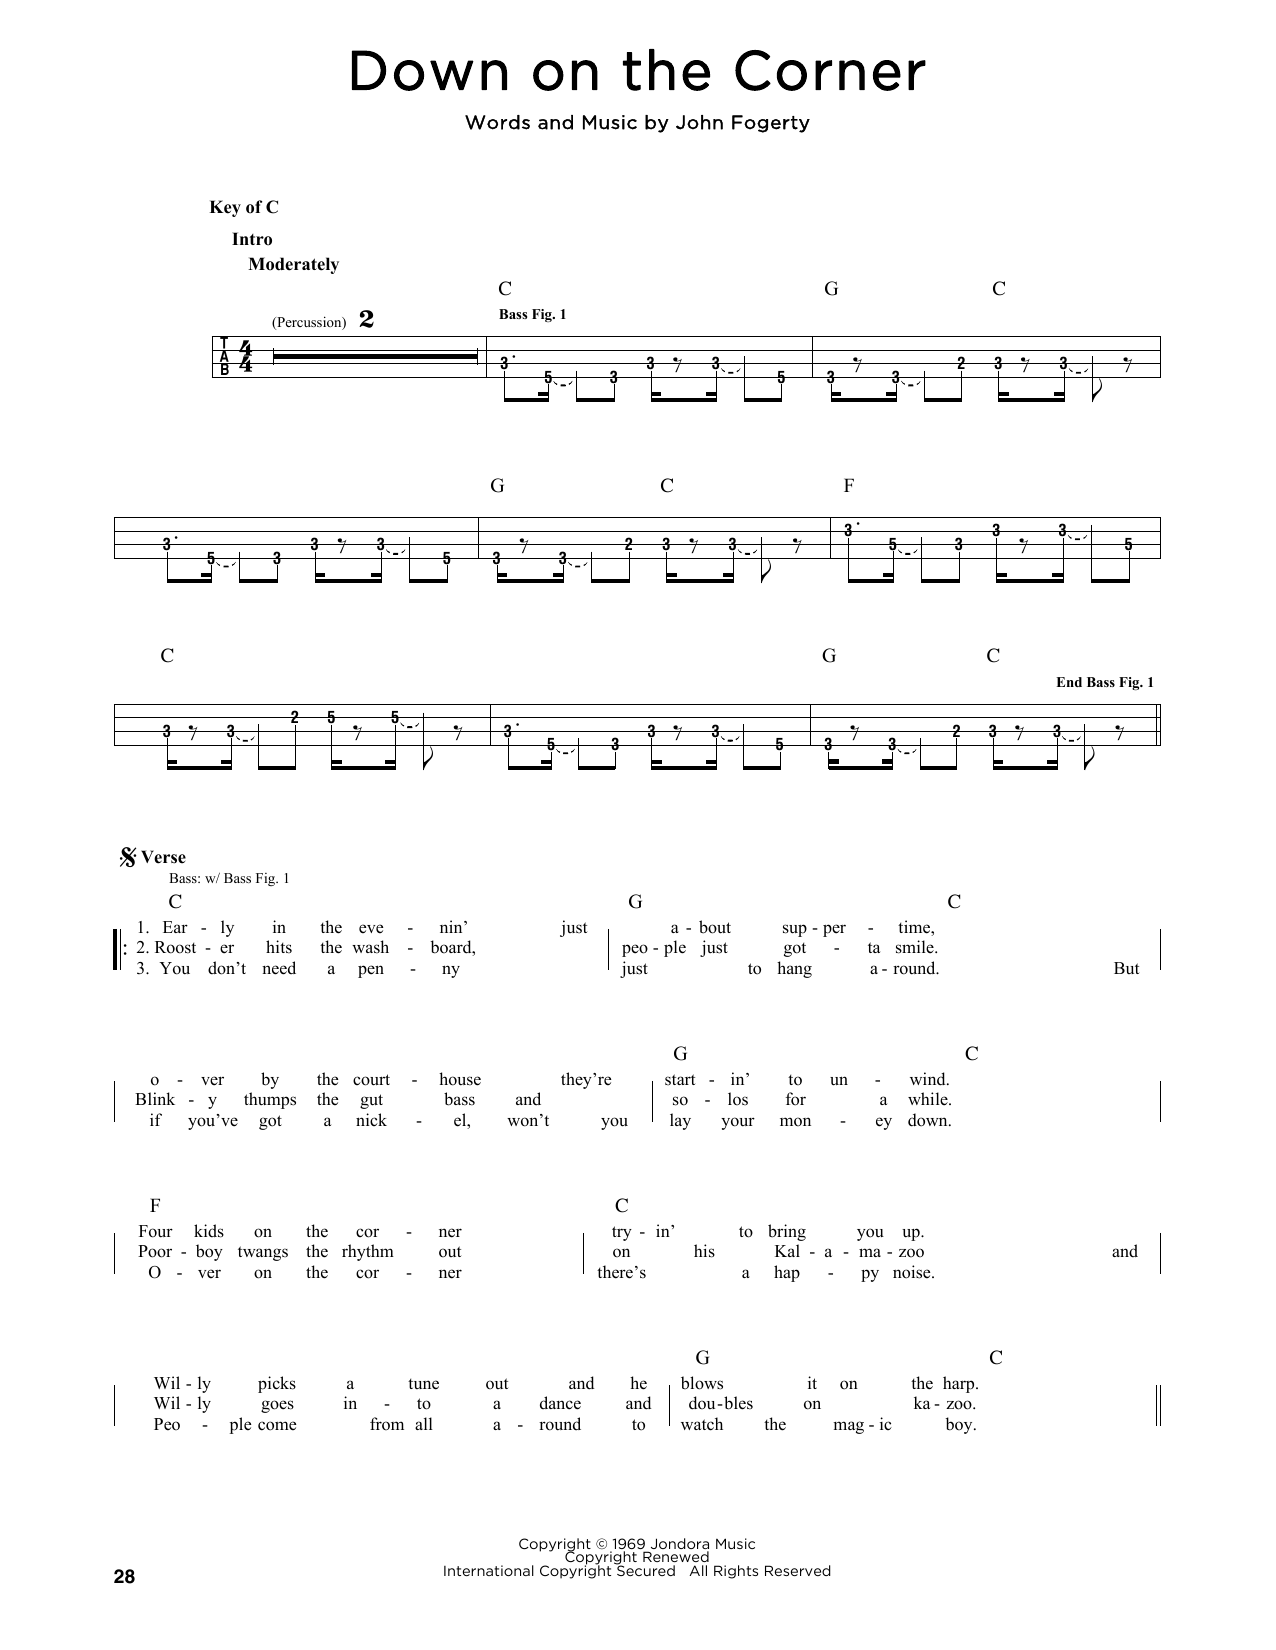 Creedence Clearwater Revival 'Down On The Corner' Sheet Music Notes, Chords    Download Printable Lyrics & Chords   SKU 15